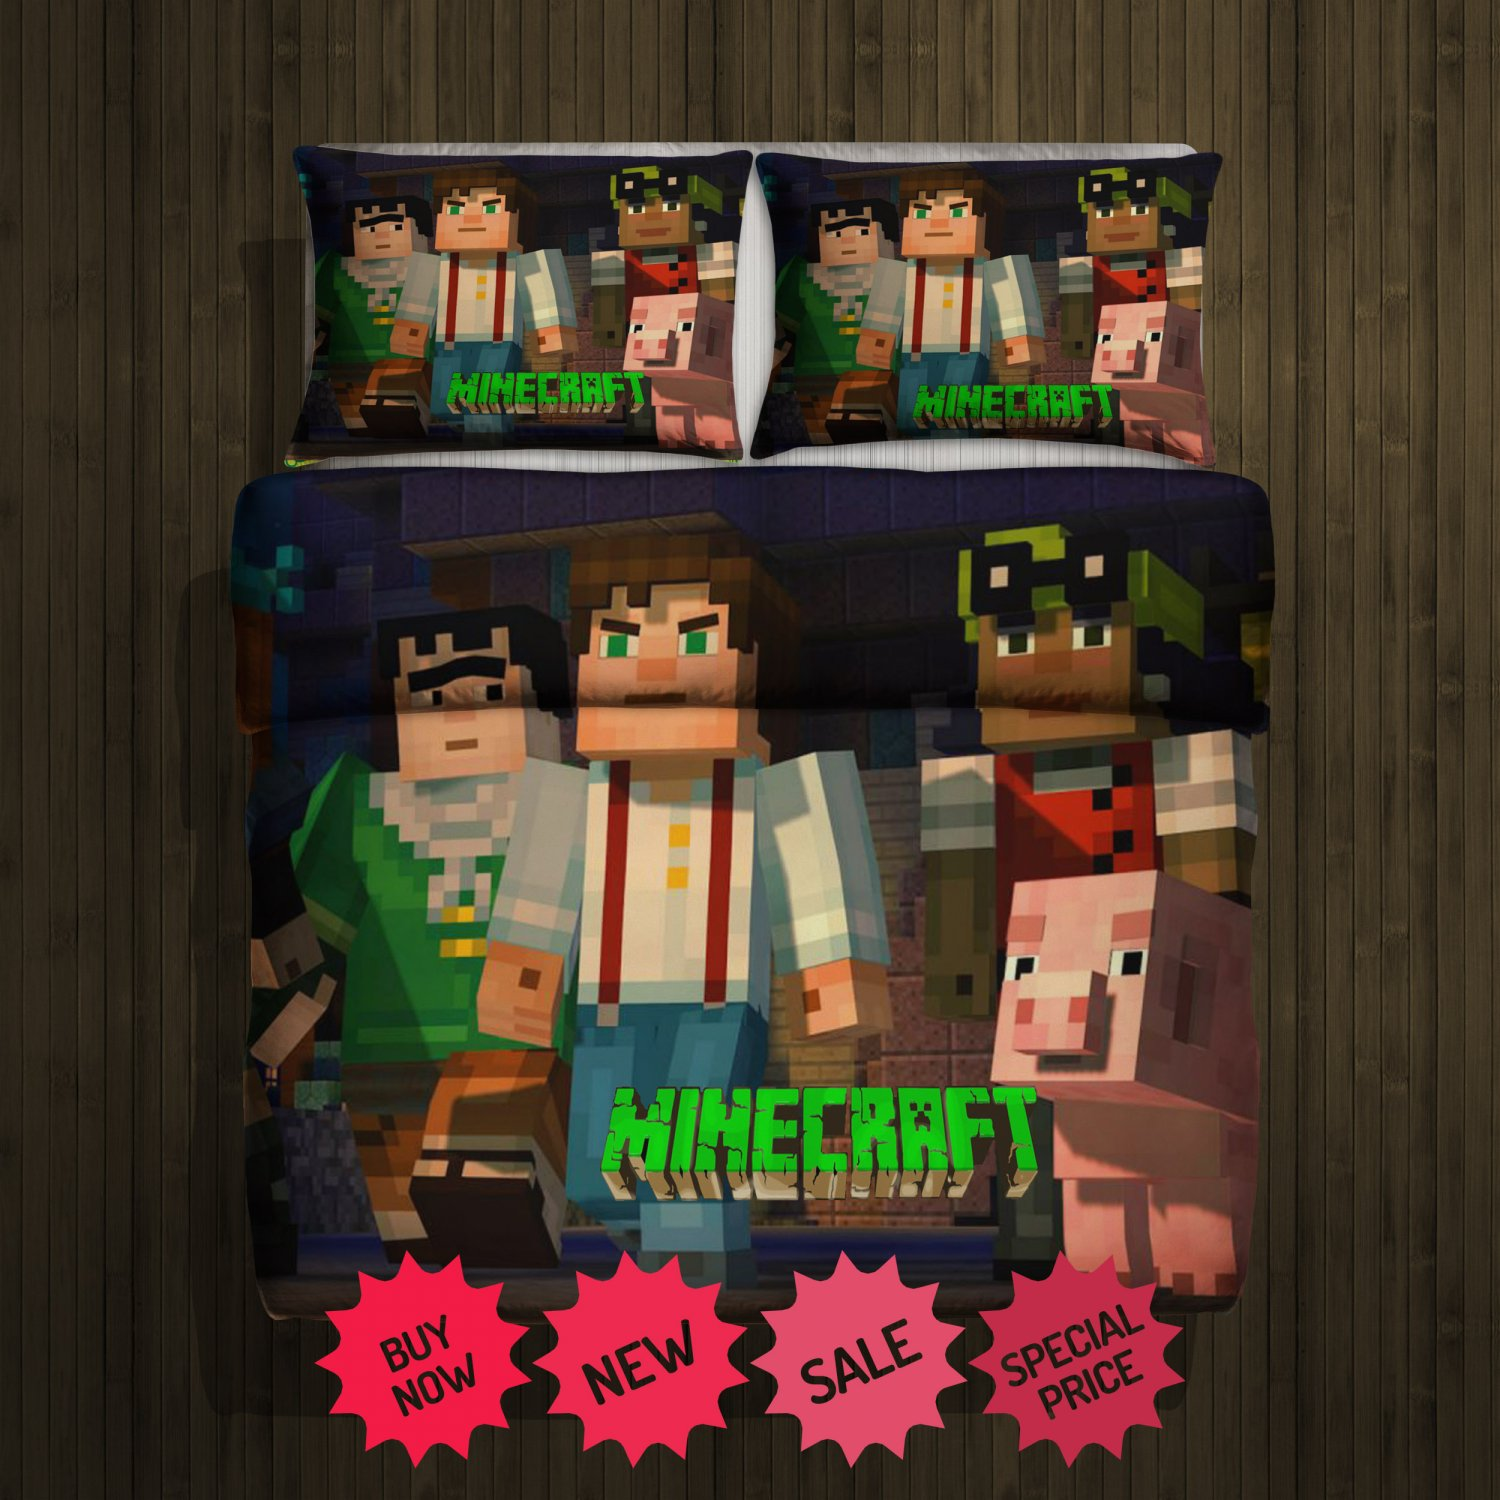 Mine Craft New Blanket Large & 2 Pillow Cases #97295875,97295876(2)